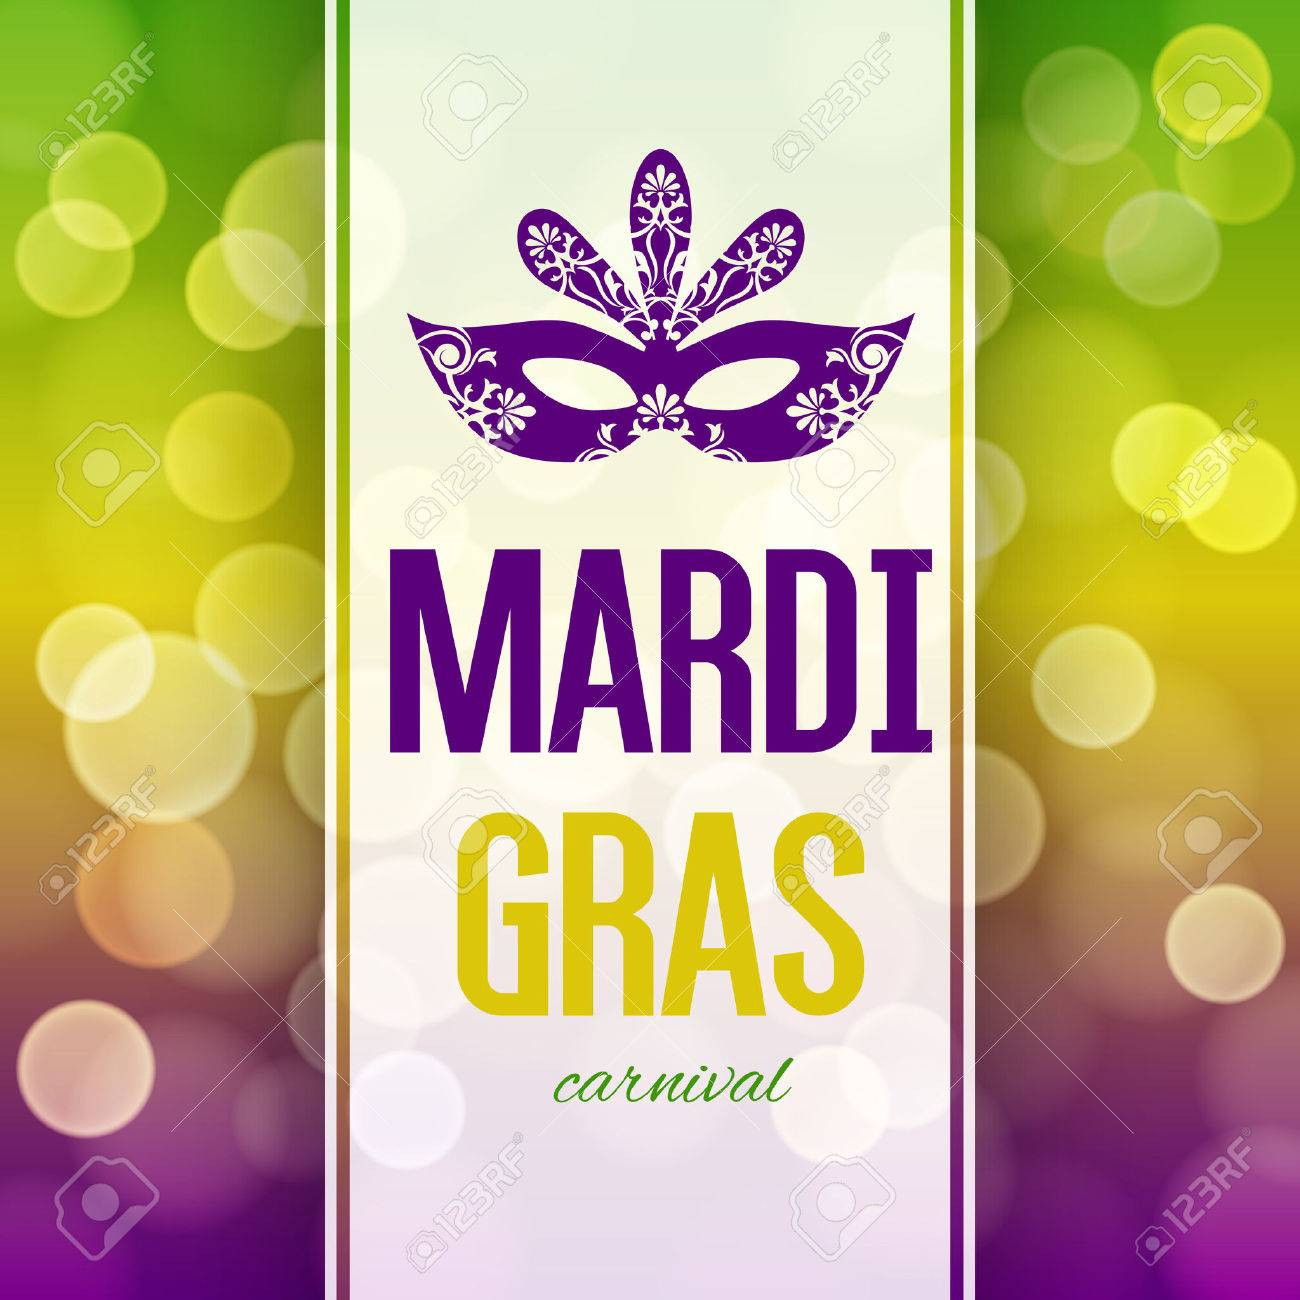 Mardi Gras carnival background with masquerade mask silhouette - 50483611